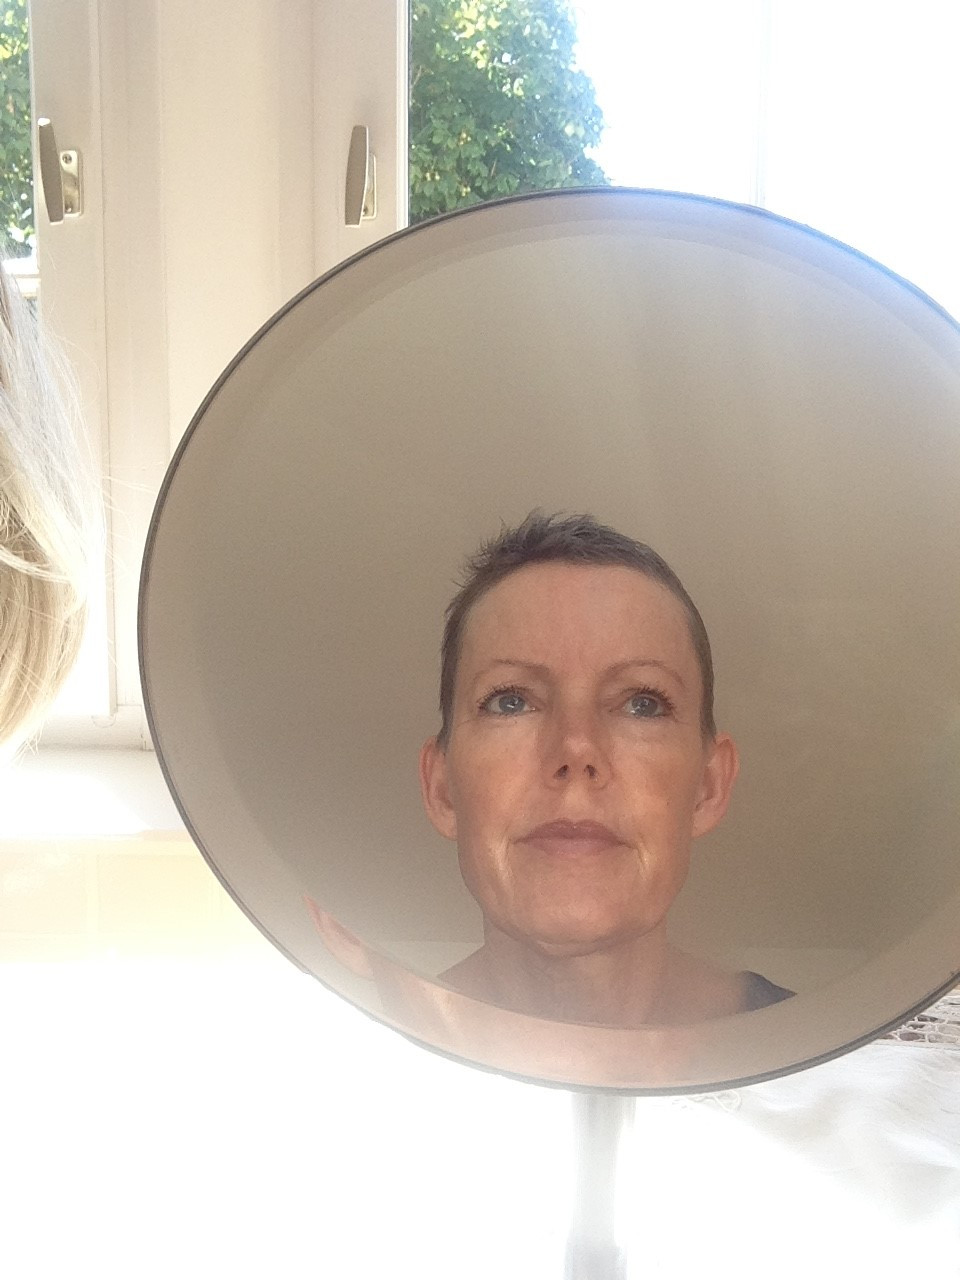 Cancer patient looking in the mirror